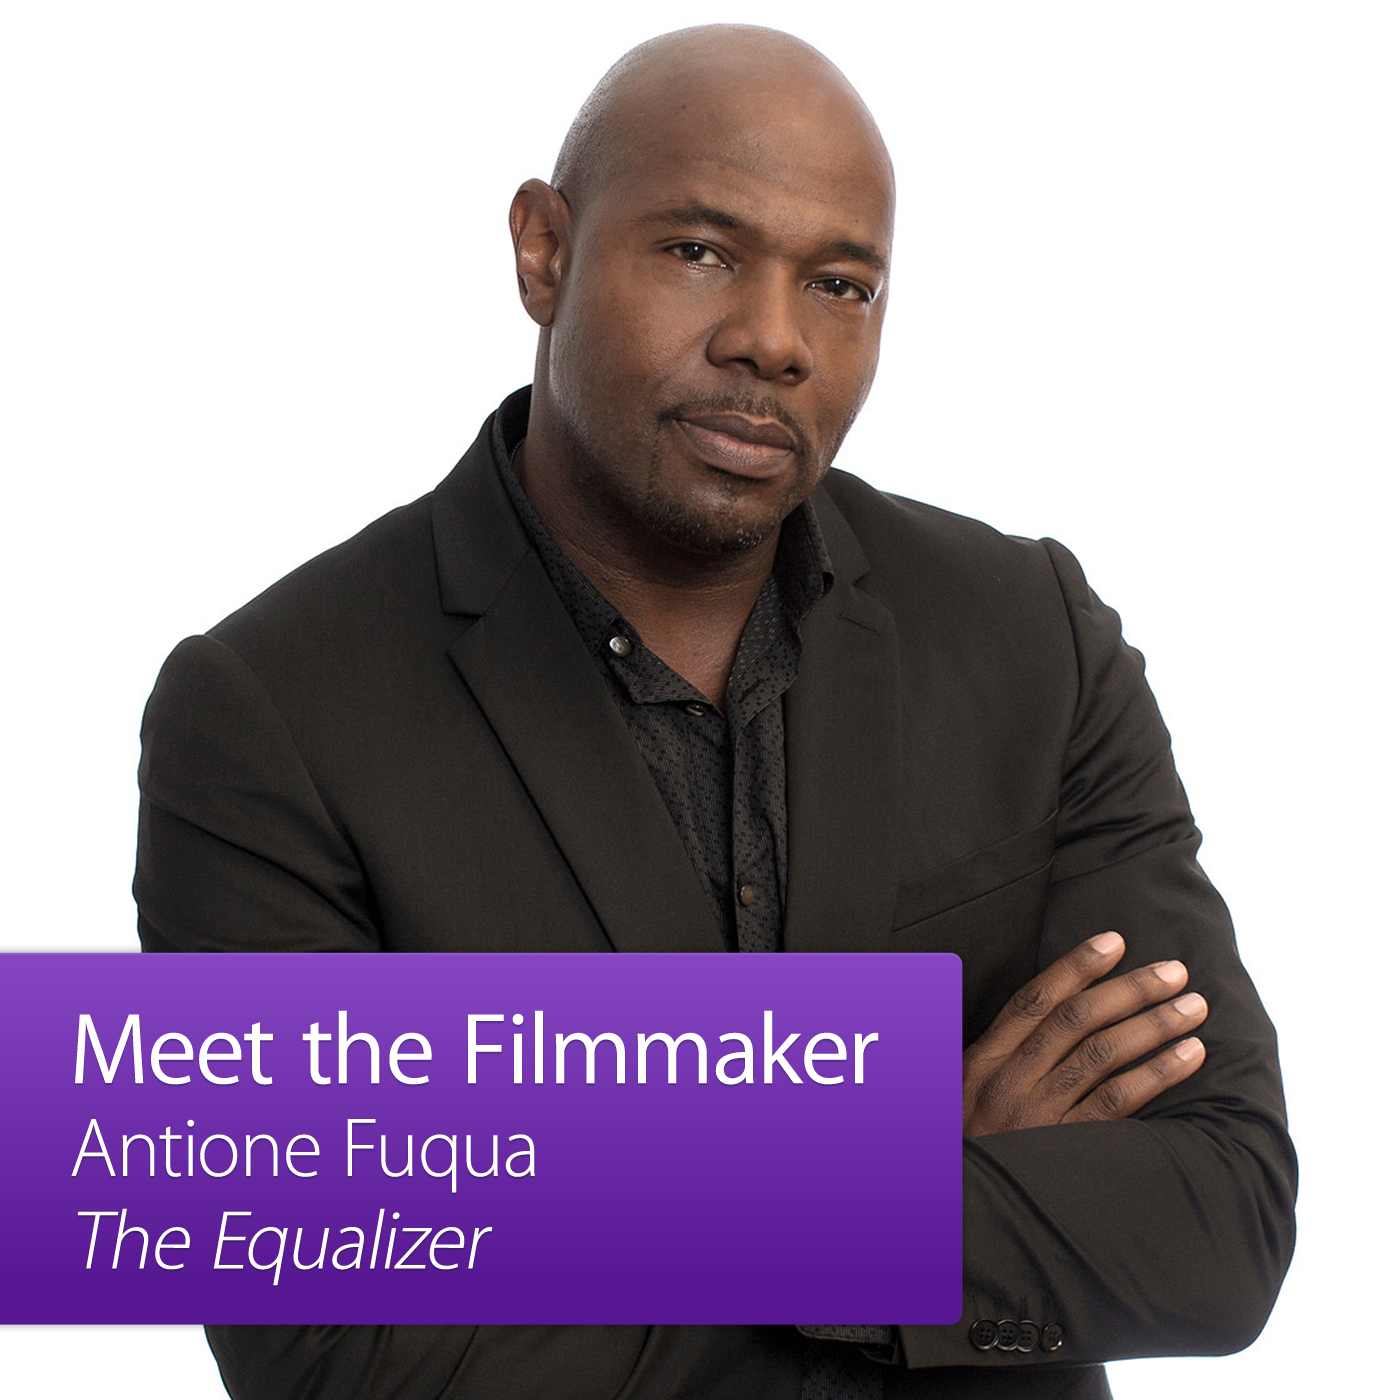 Antoine Fuqua: Meet the Filmmaker